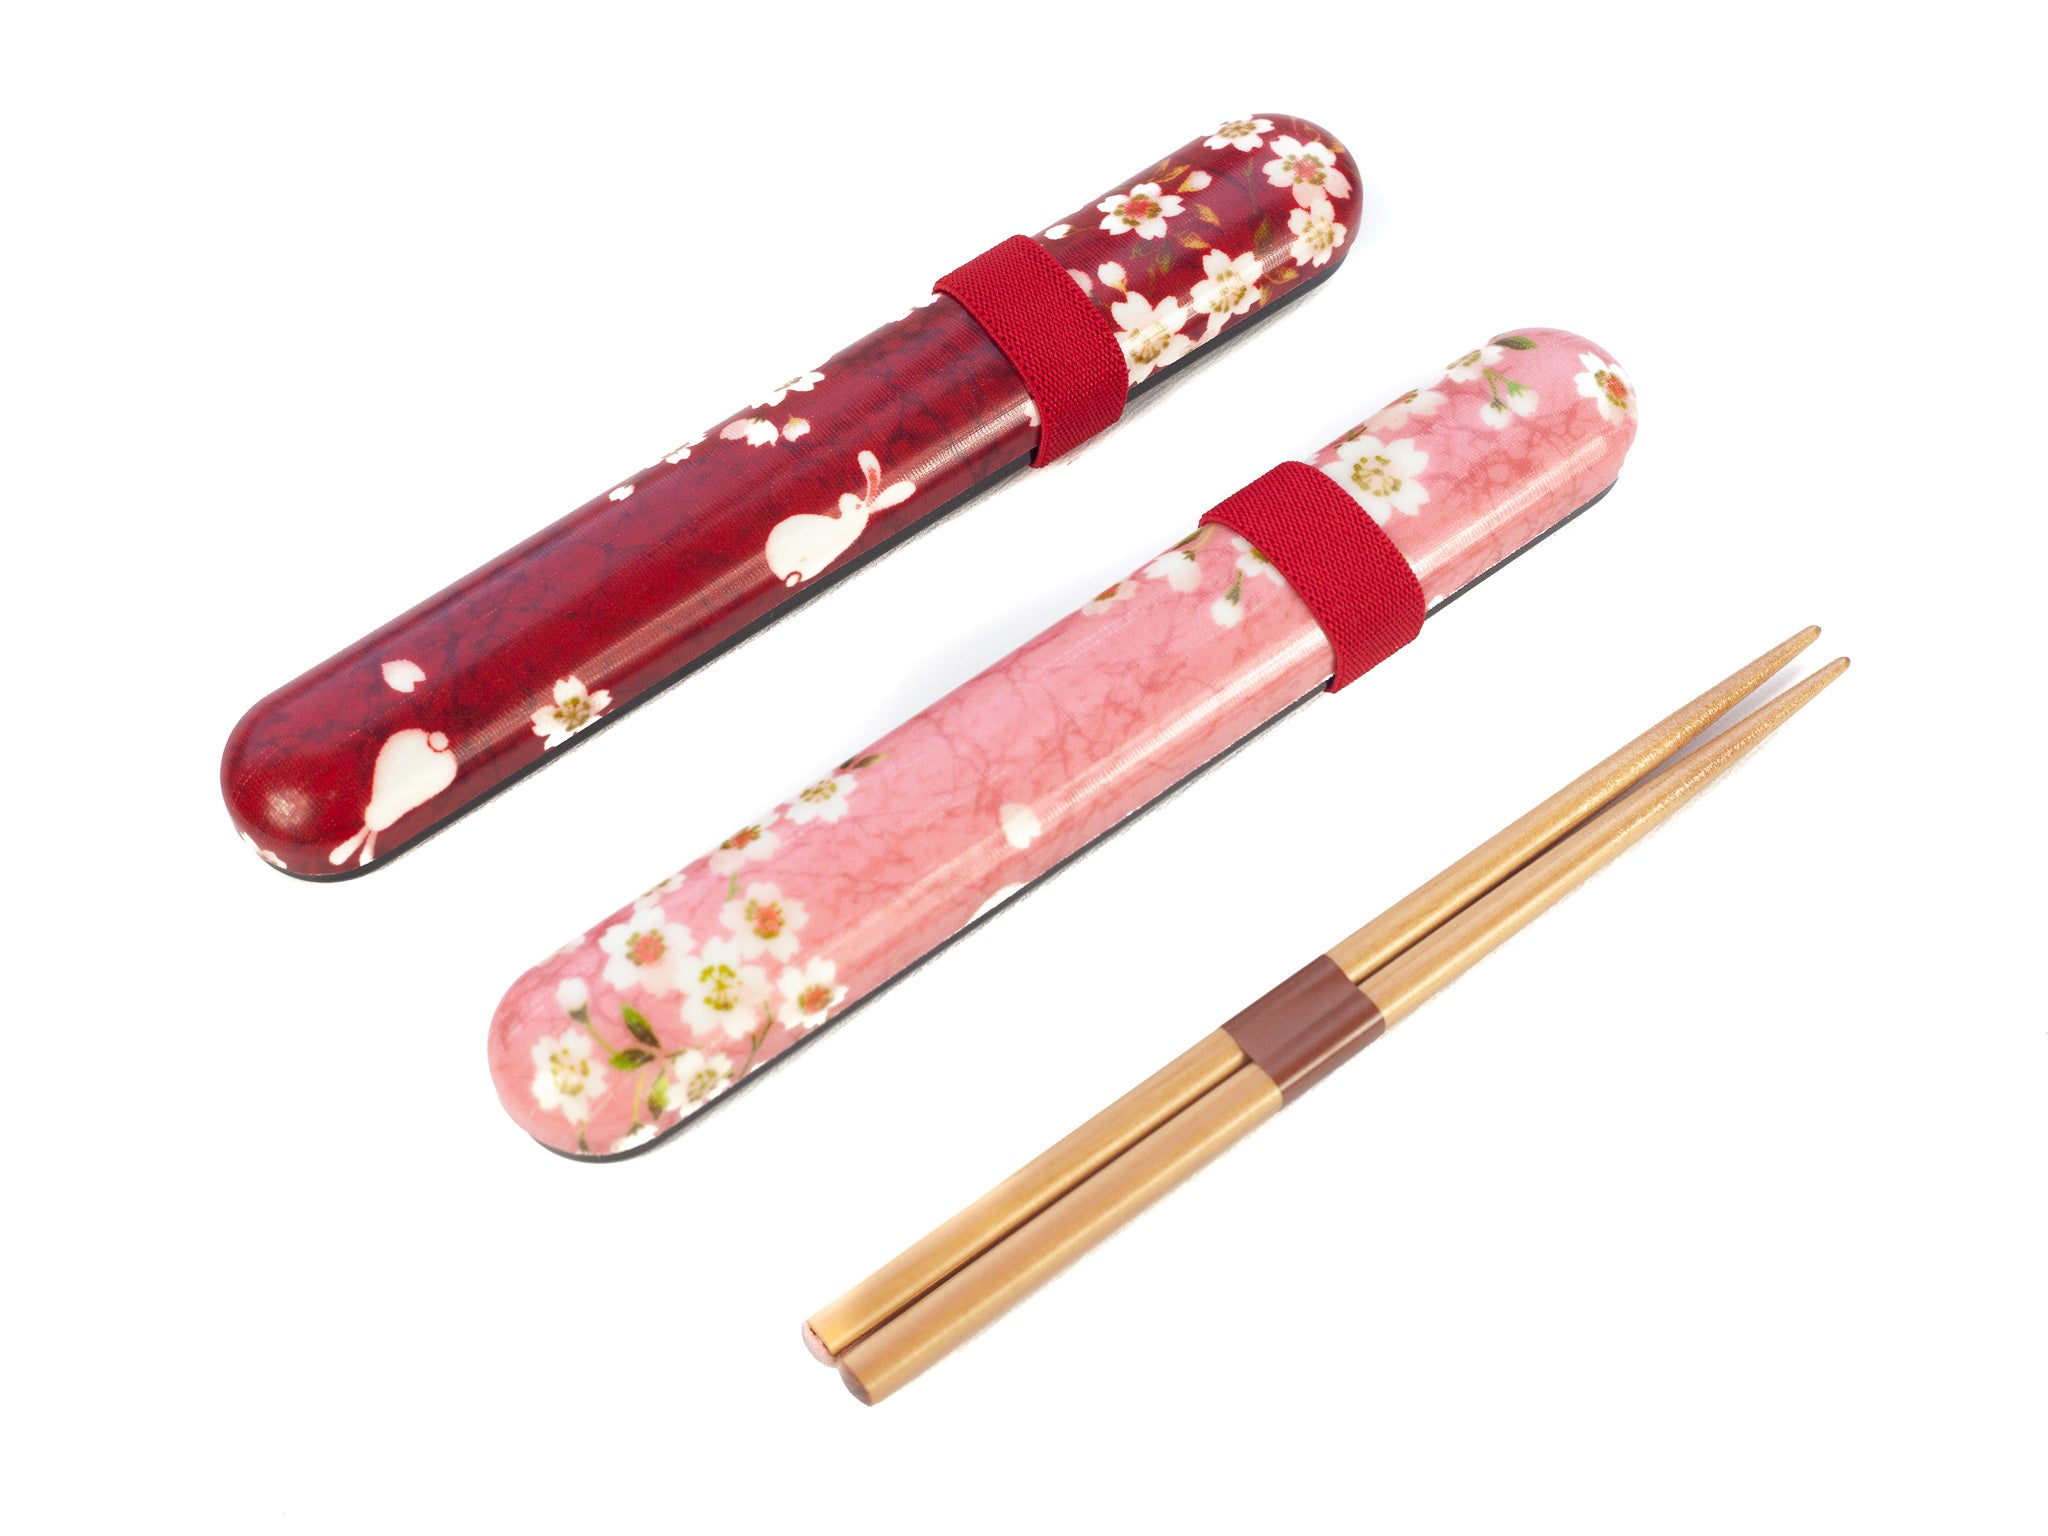 Sakura Rabbit Chopsticks Set | Red